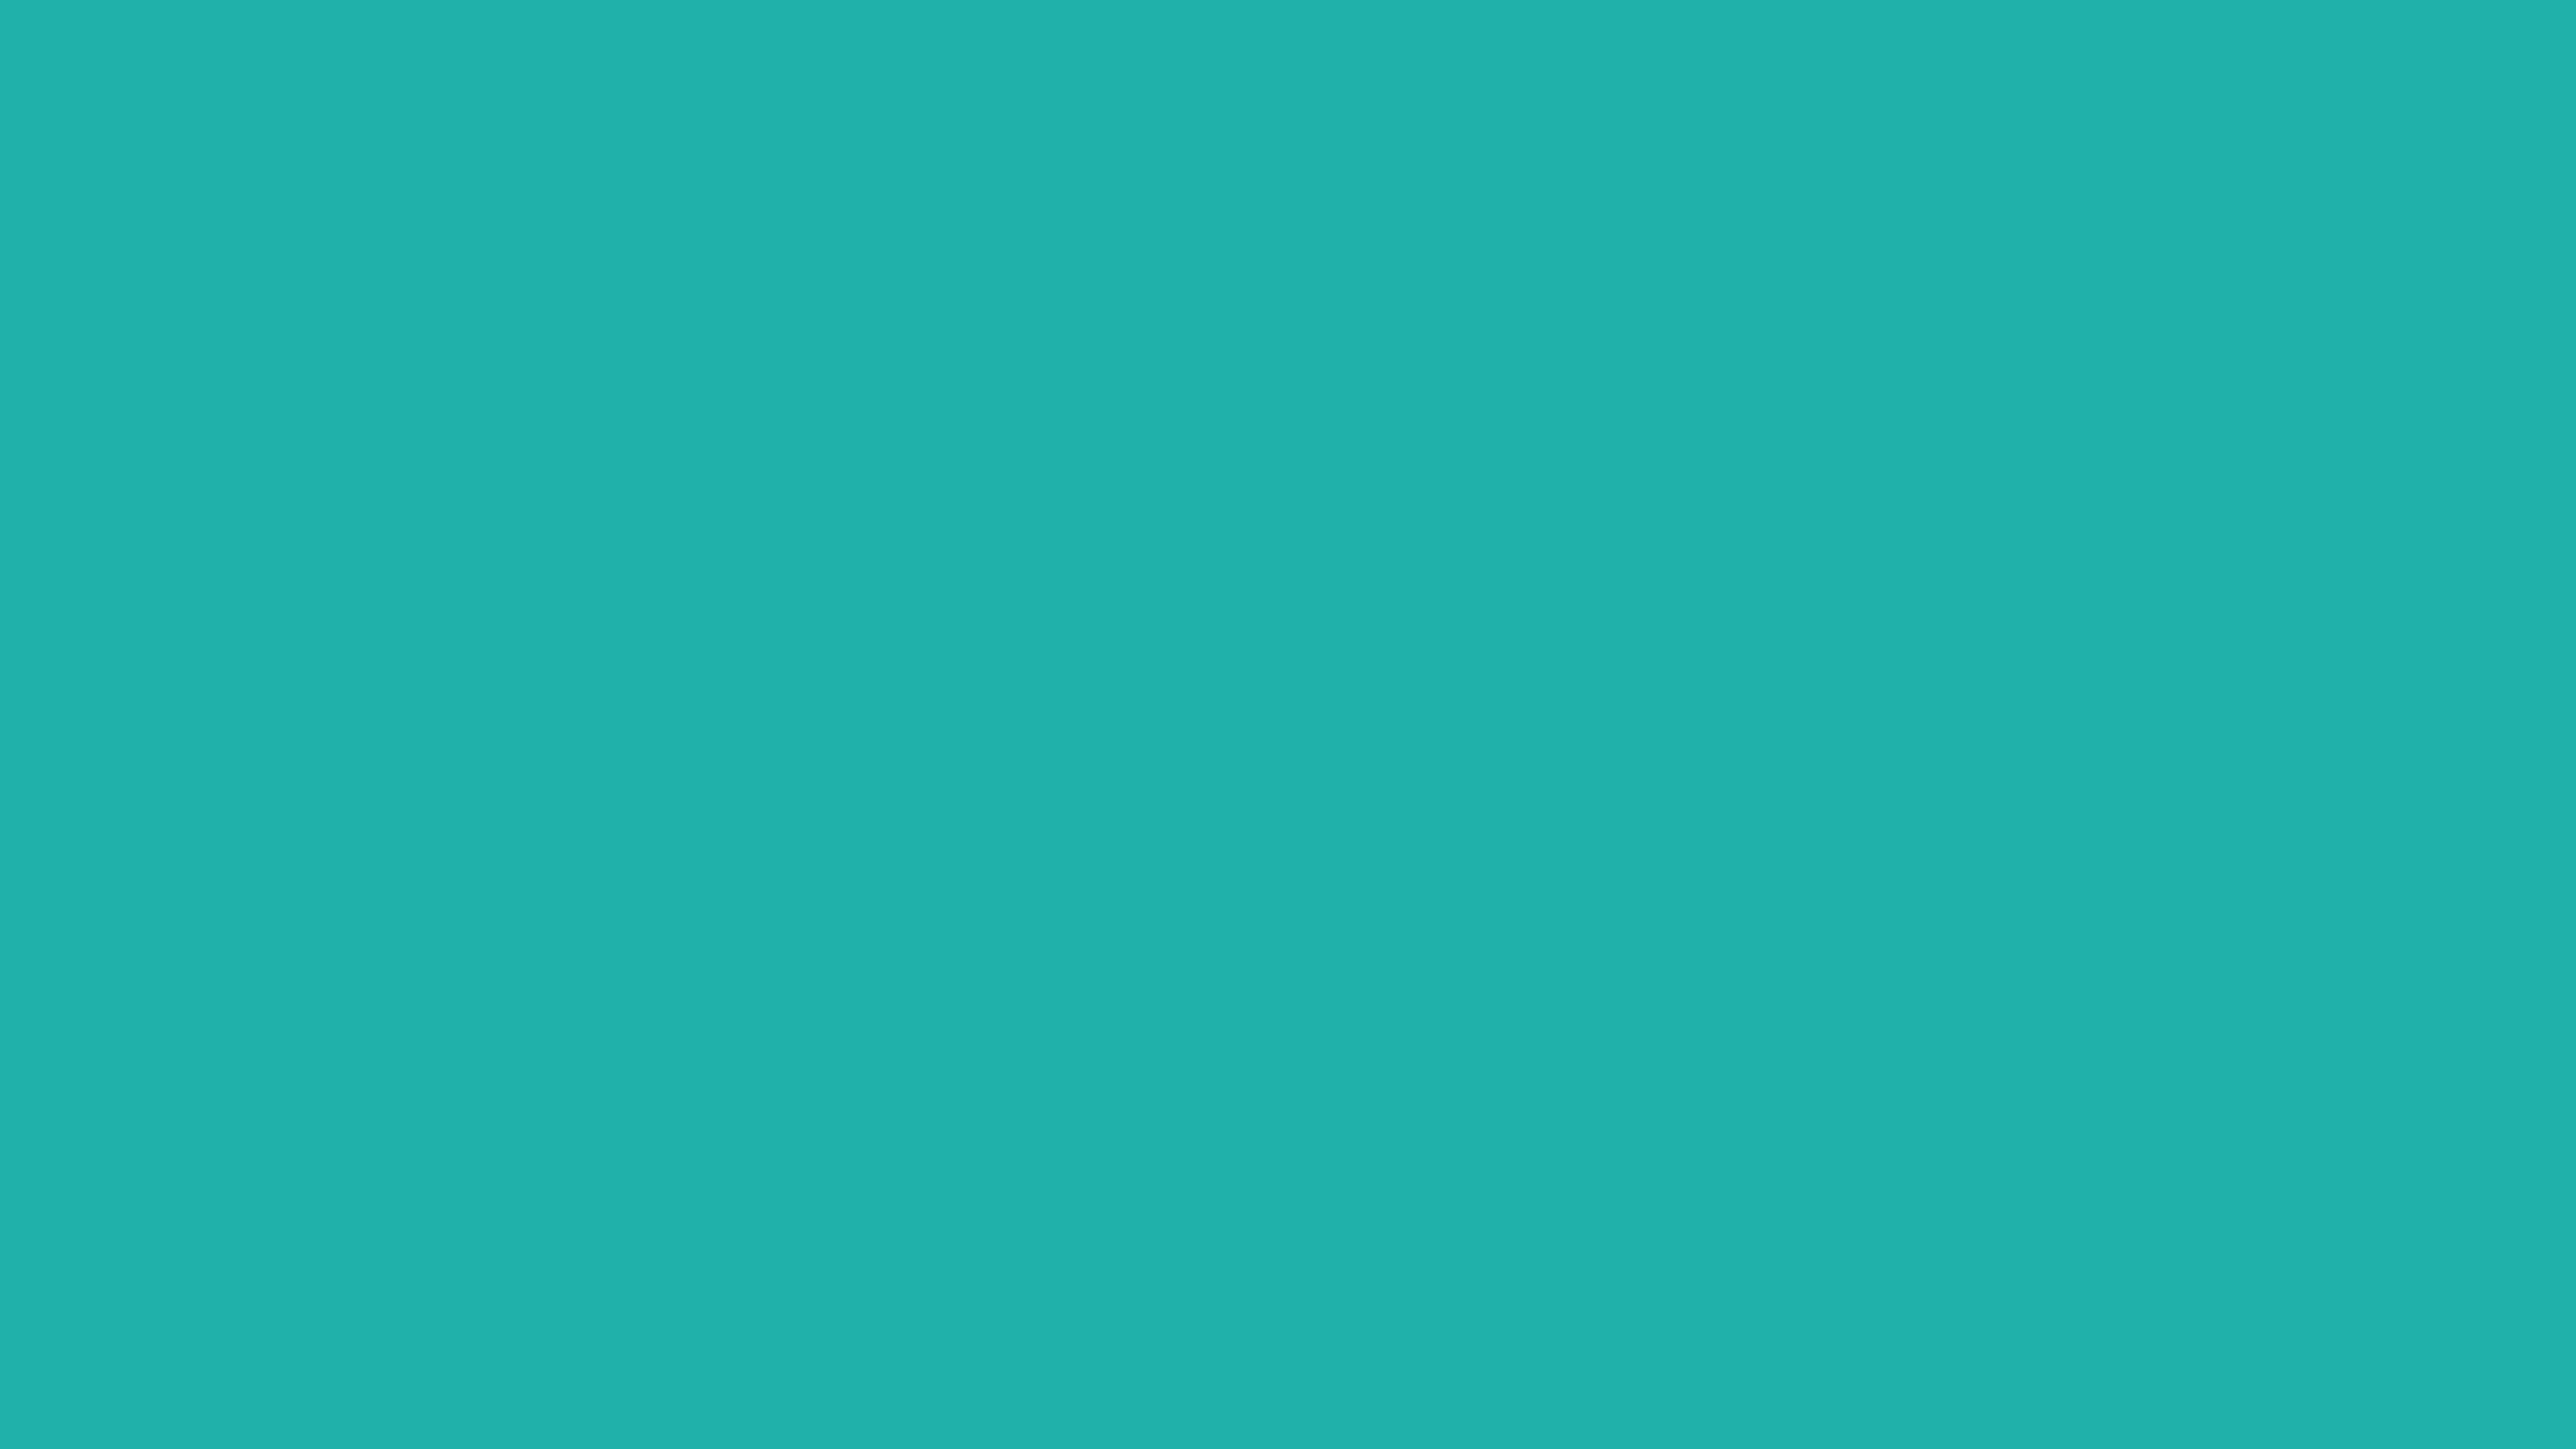 3840x2160 Light Sea Green Solid Color Background